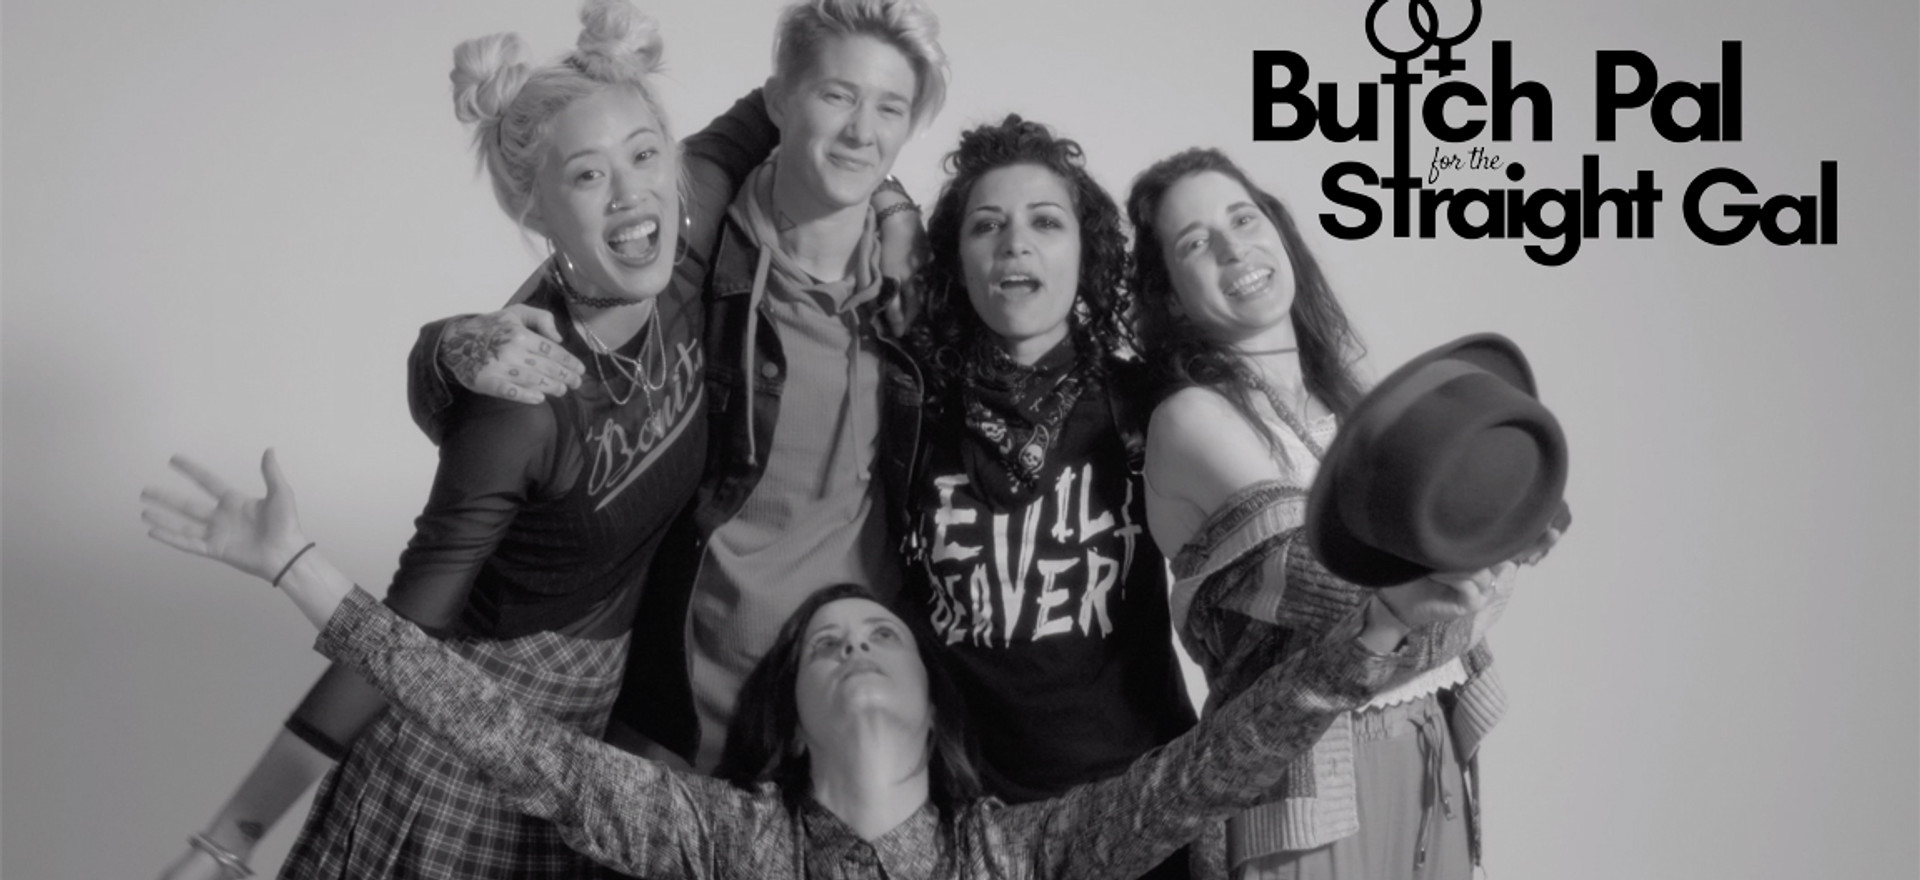 [Official Trailer] Butch Pal for the Straight Gal